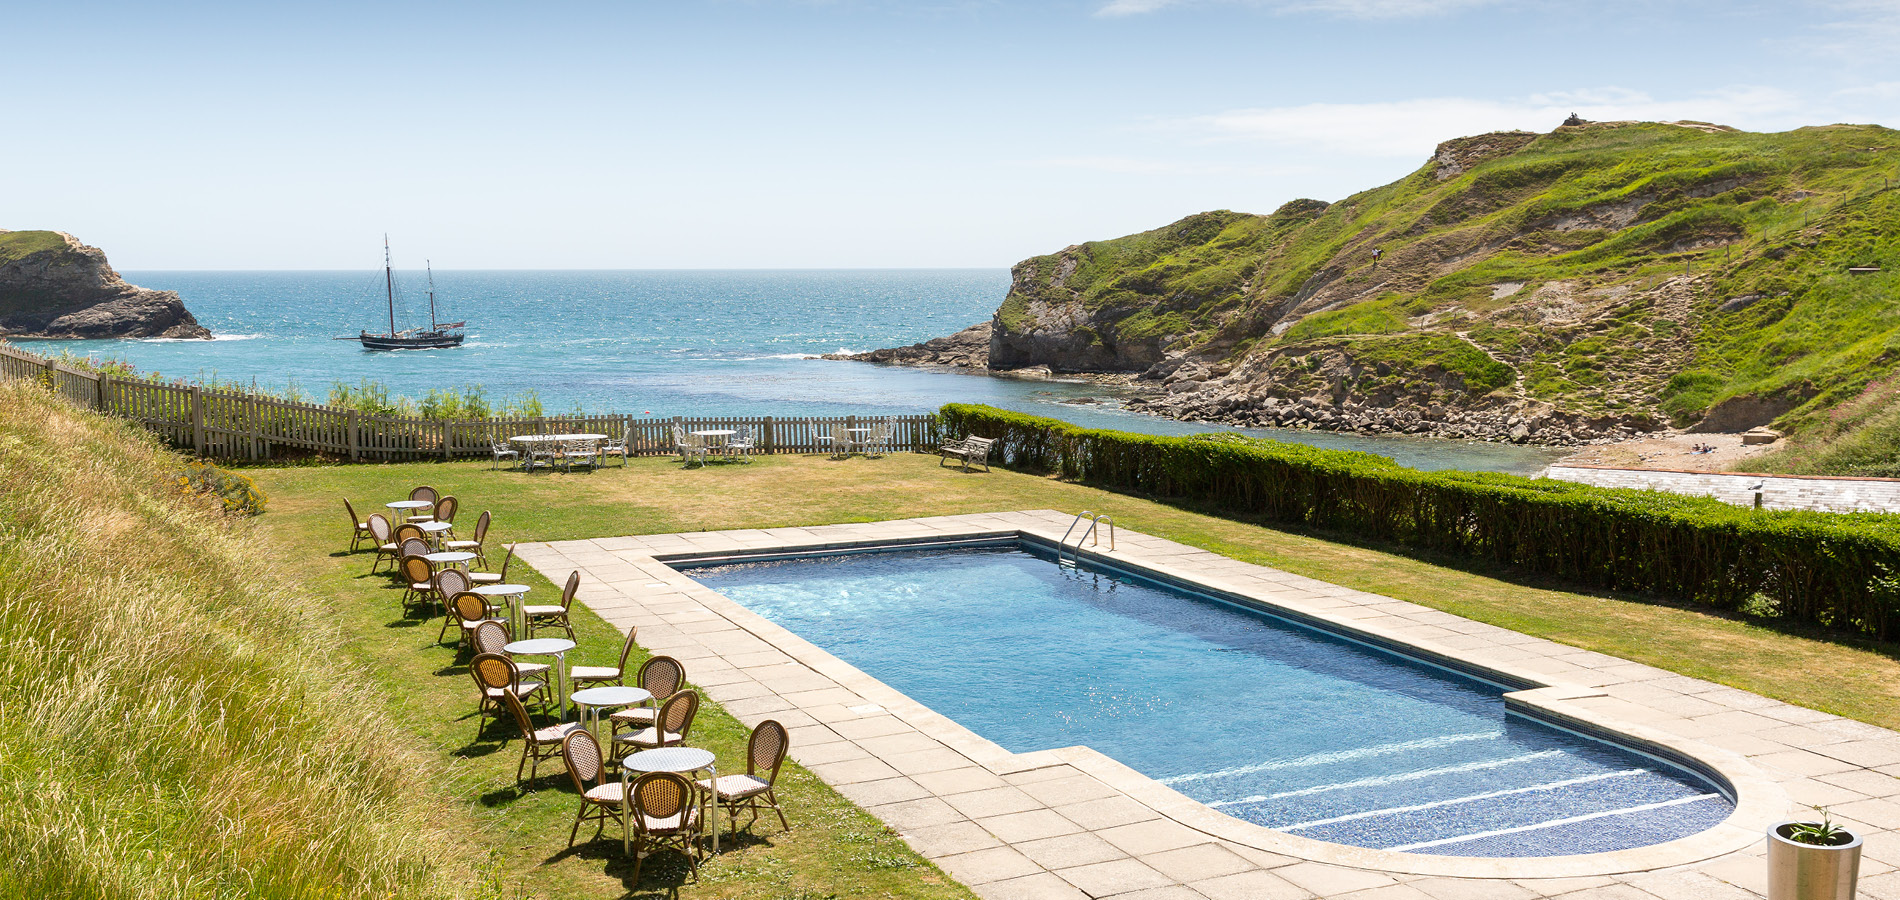 Lulworth Cove Hotel with Pool - Rudds